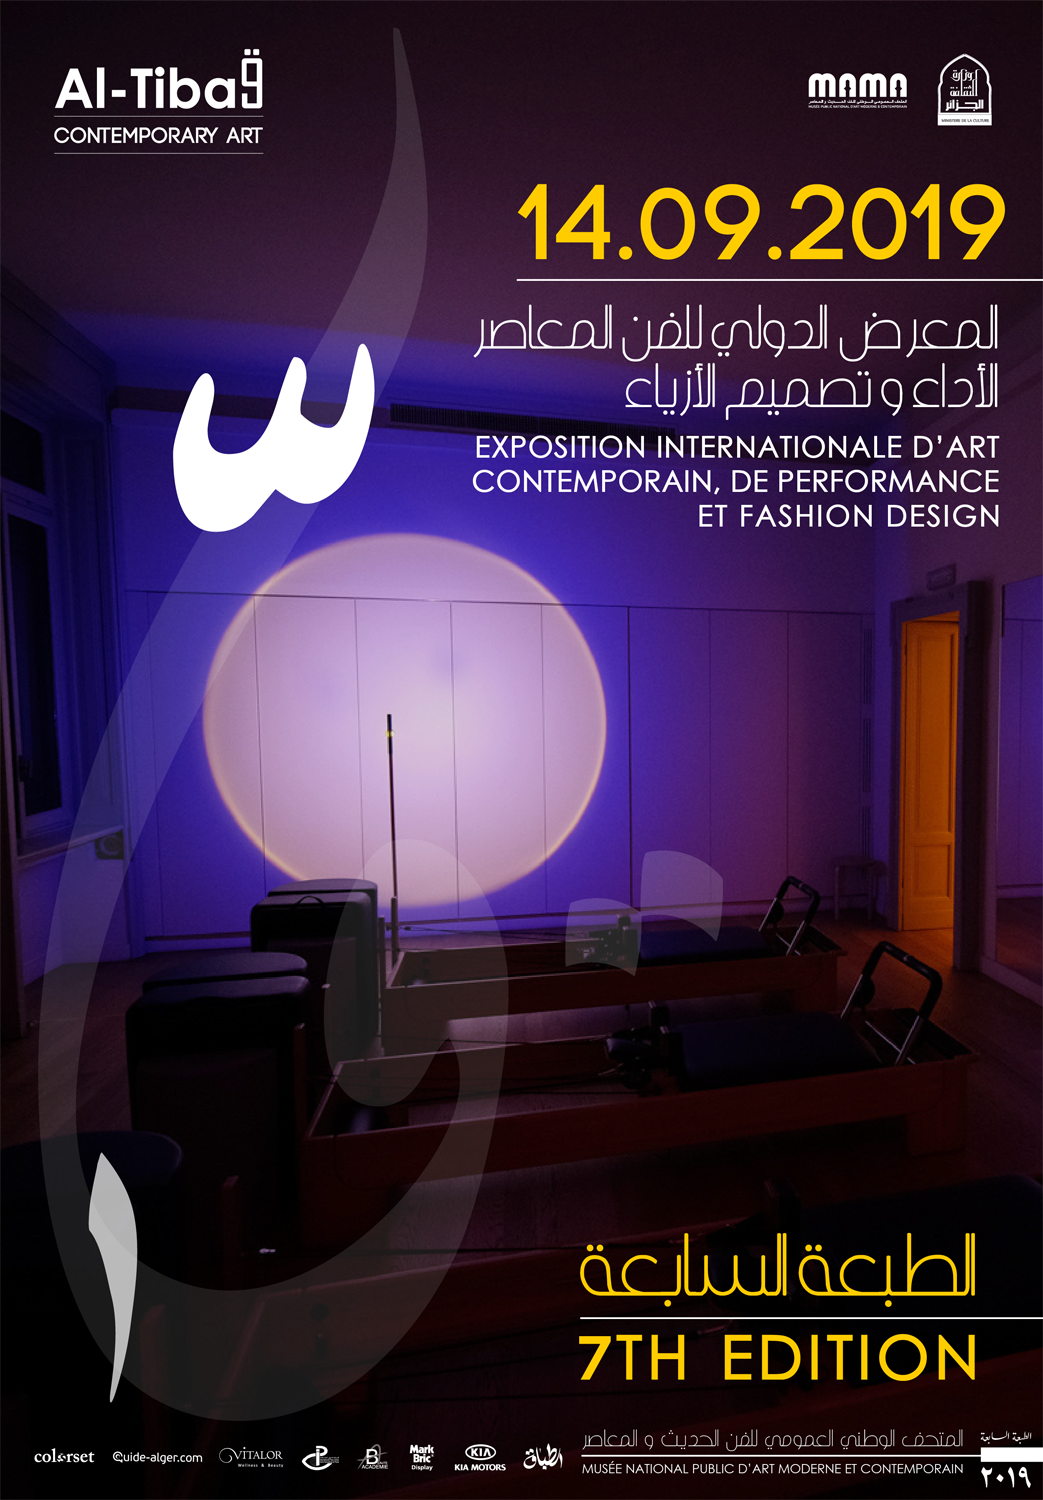 Al-Tiba9_Alger_2019_7th_Edition_Official_Poster_Poto_Massimiliano_Moro